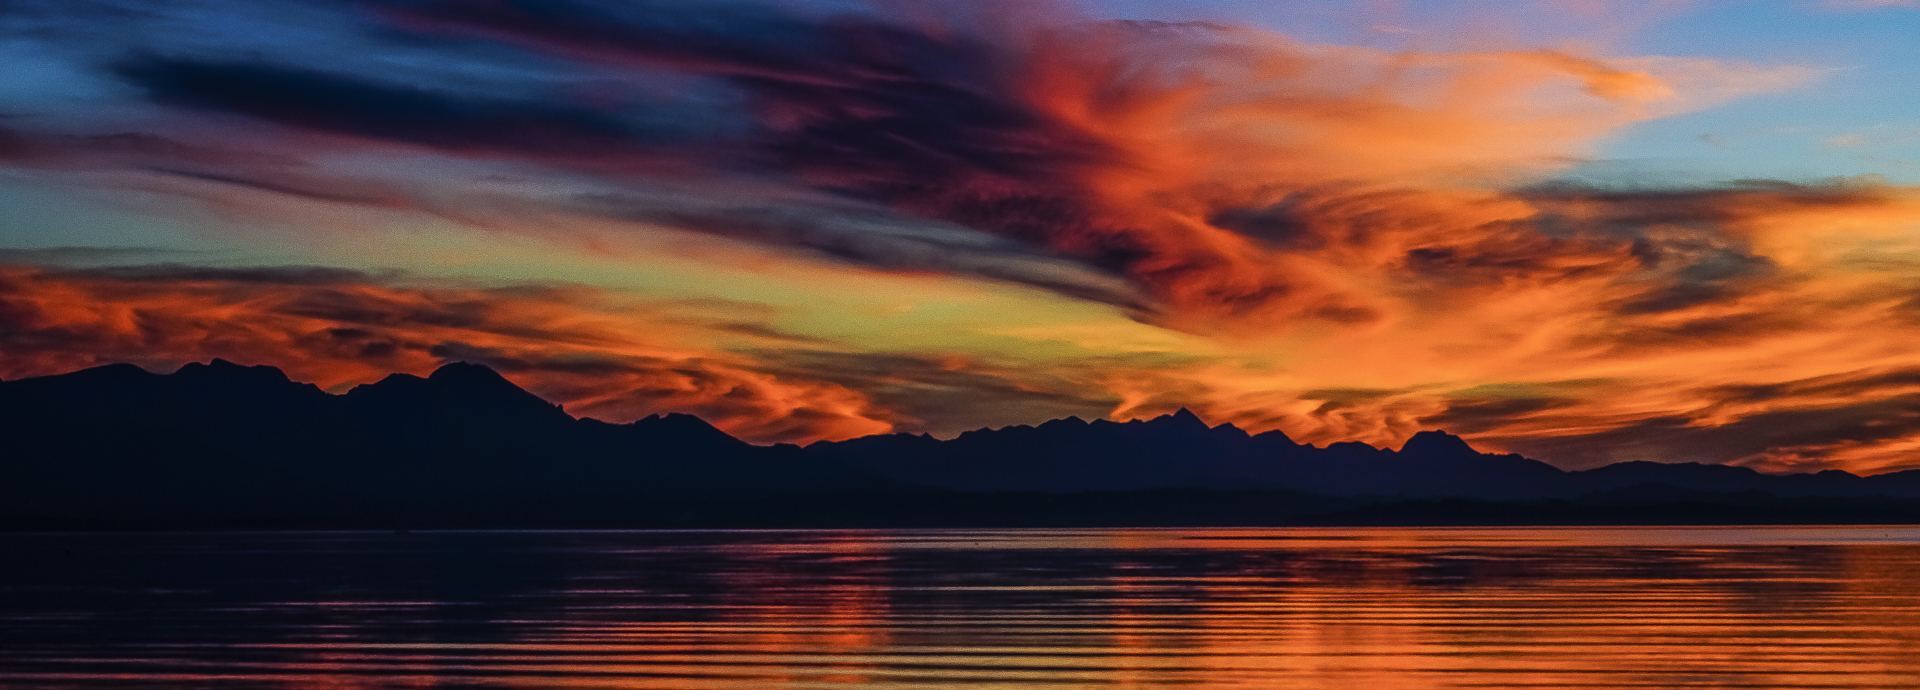 Elias Maier Photography Chiemsee Sonnenuntergang